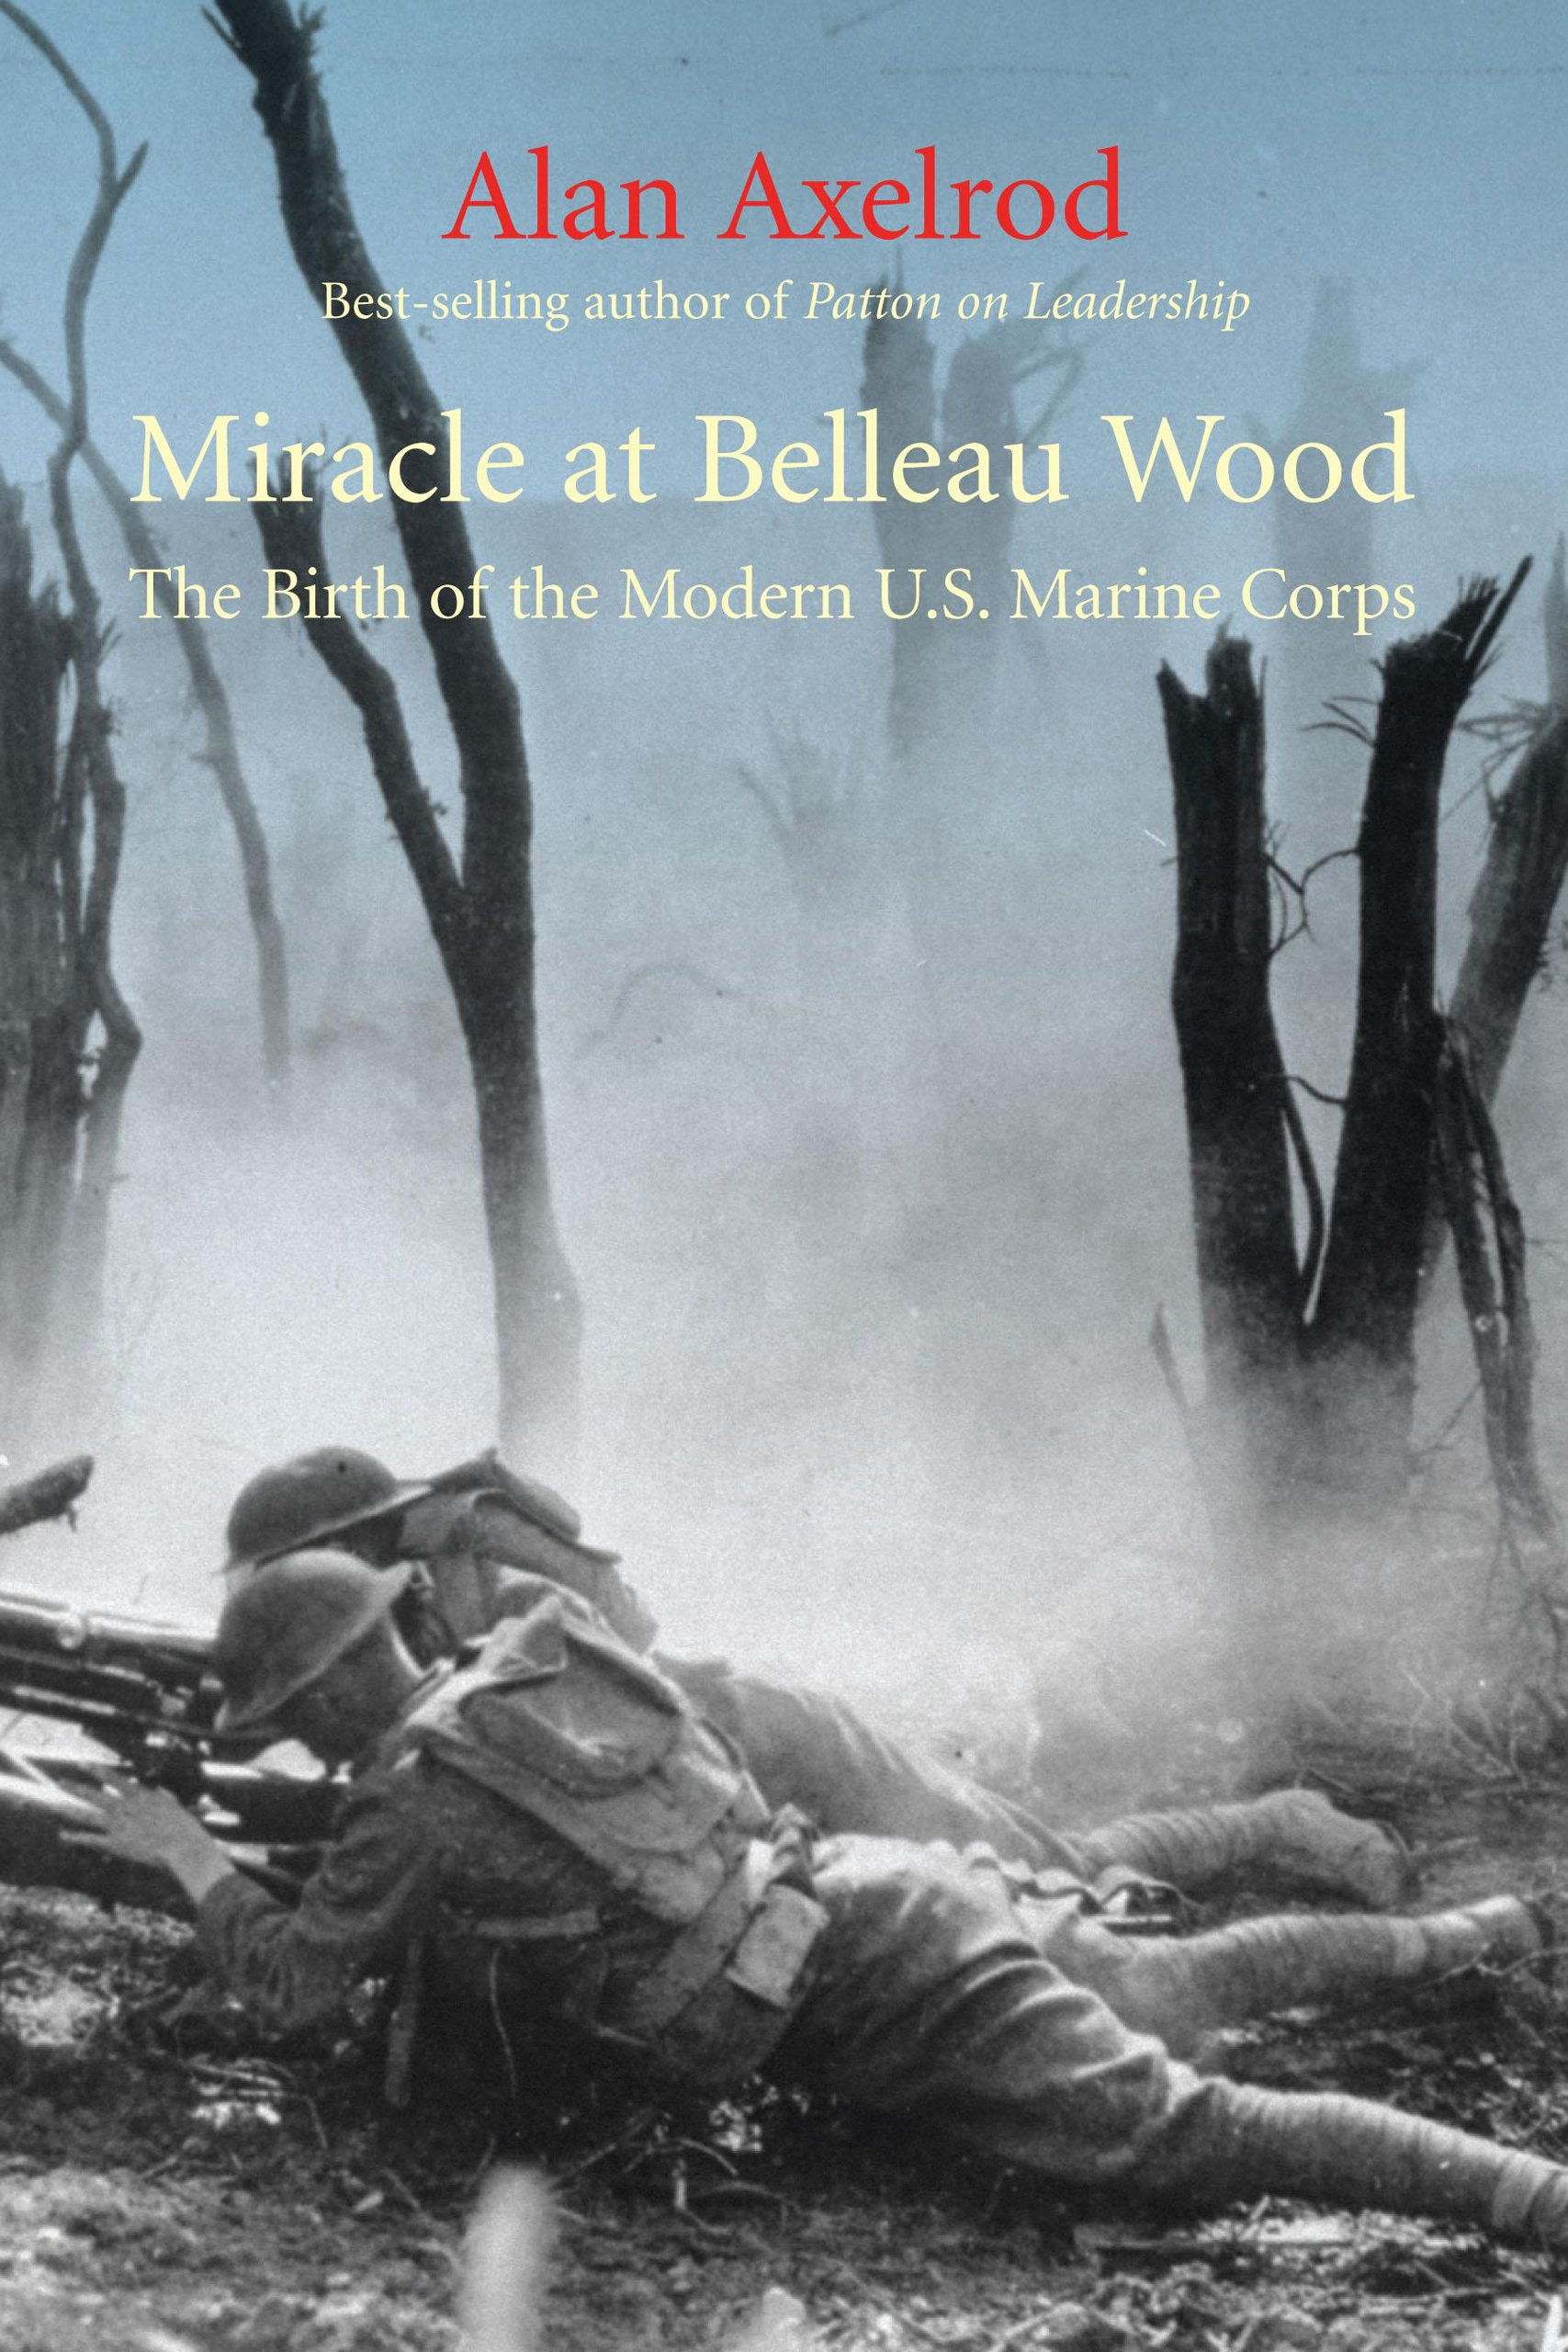 Download Miracle at Belleau Wood: The Birth of the Modern U.S. Marine Corps ebook